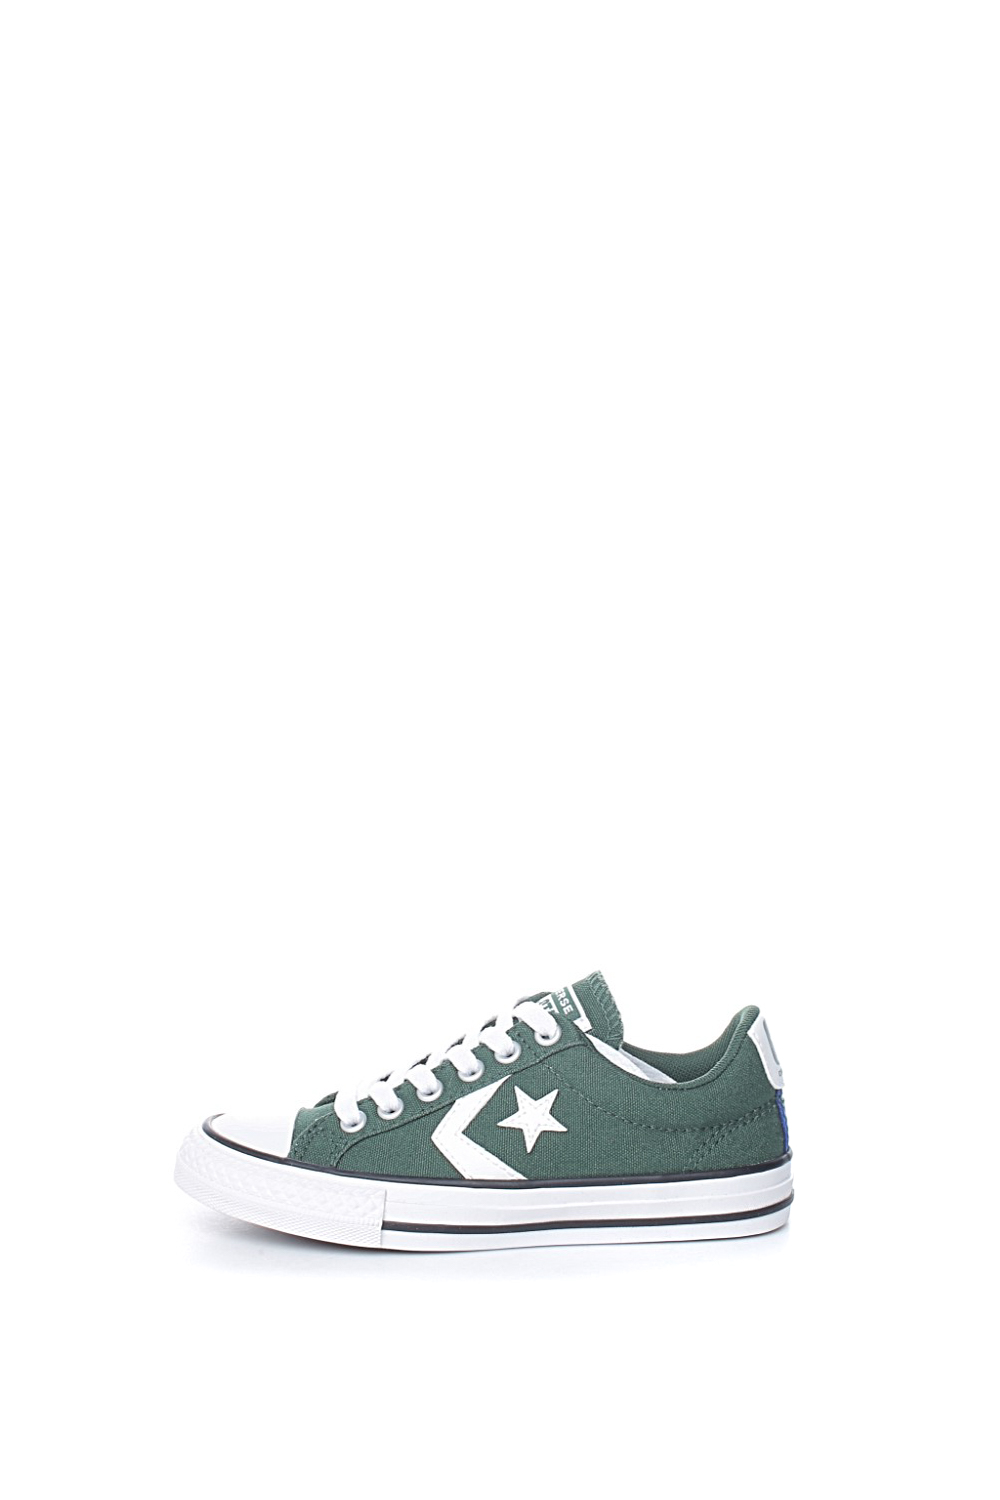 abbc8a5bdd7 Collective Online CONVERSE – Παιδικά sneakers CONVERSE Star Player EV Ox  πράσινα